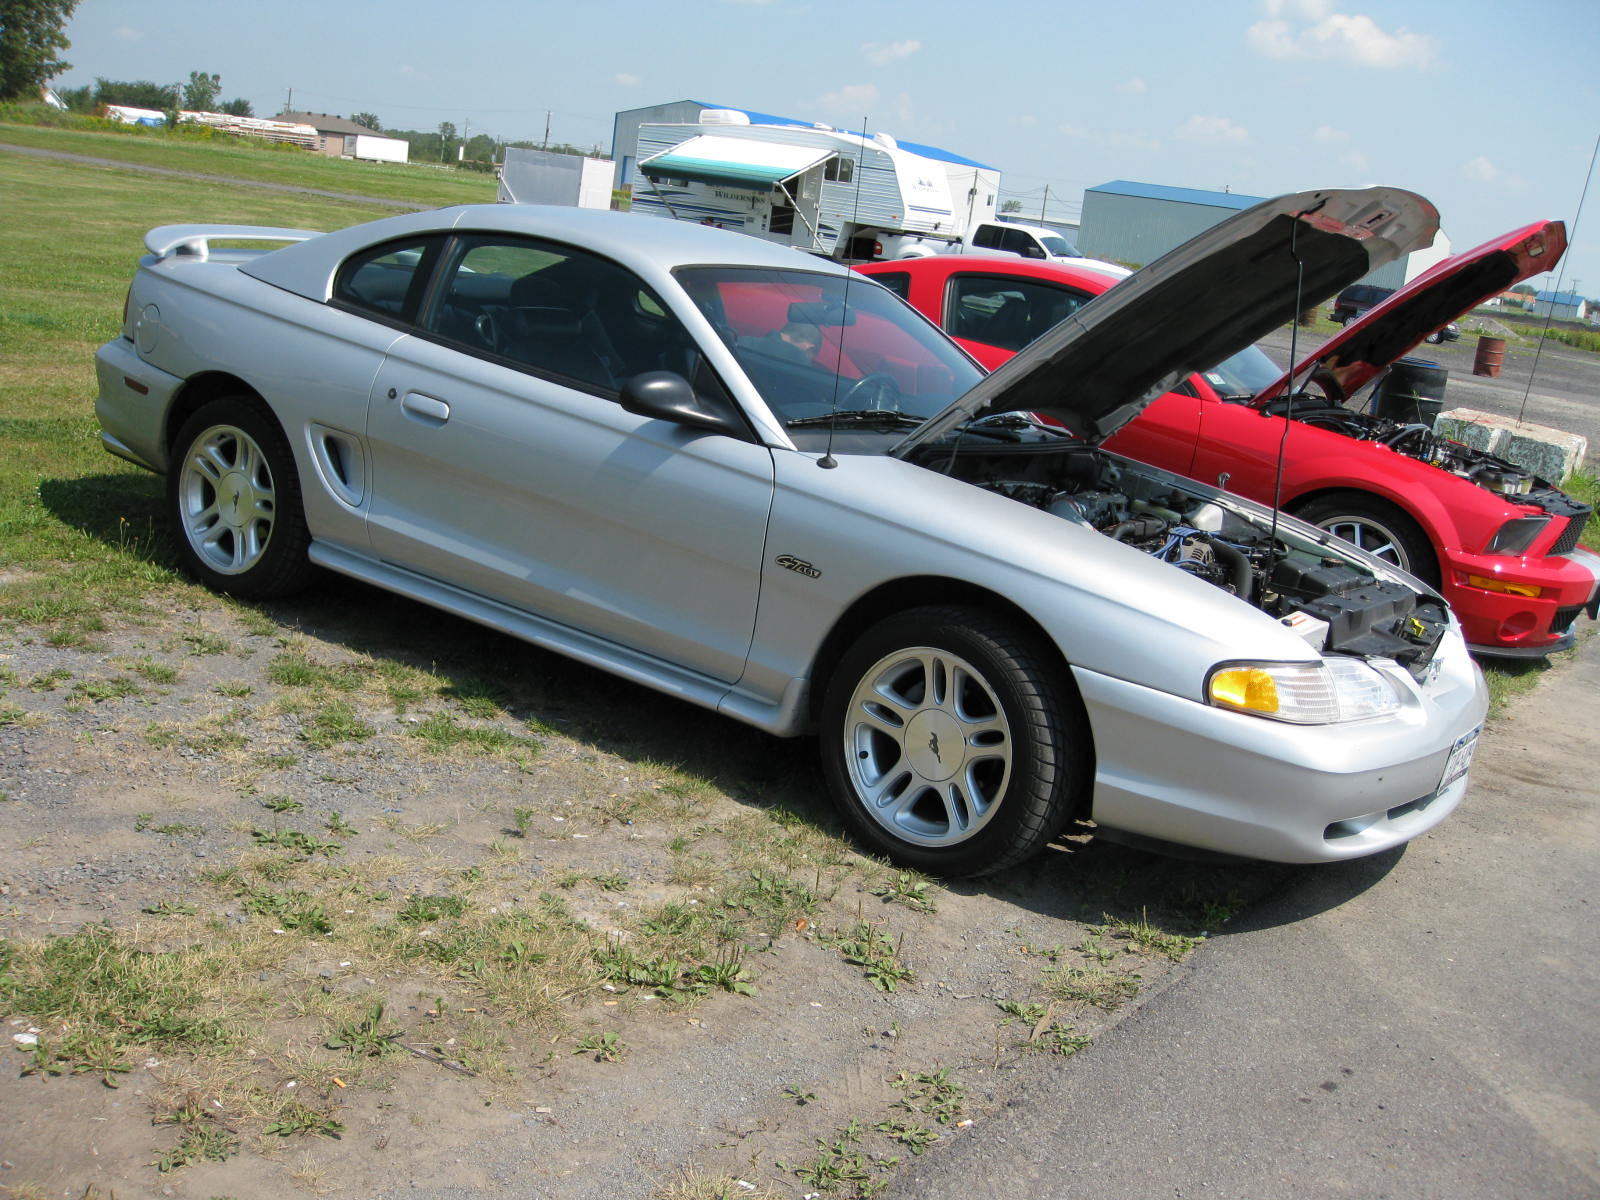 1998 ford mustang gt picture mods upgrades